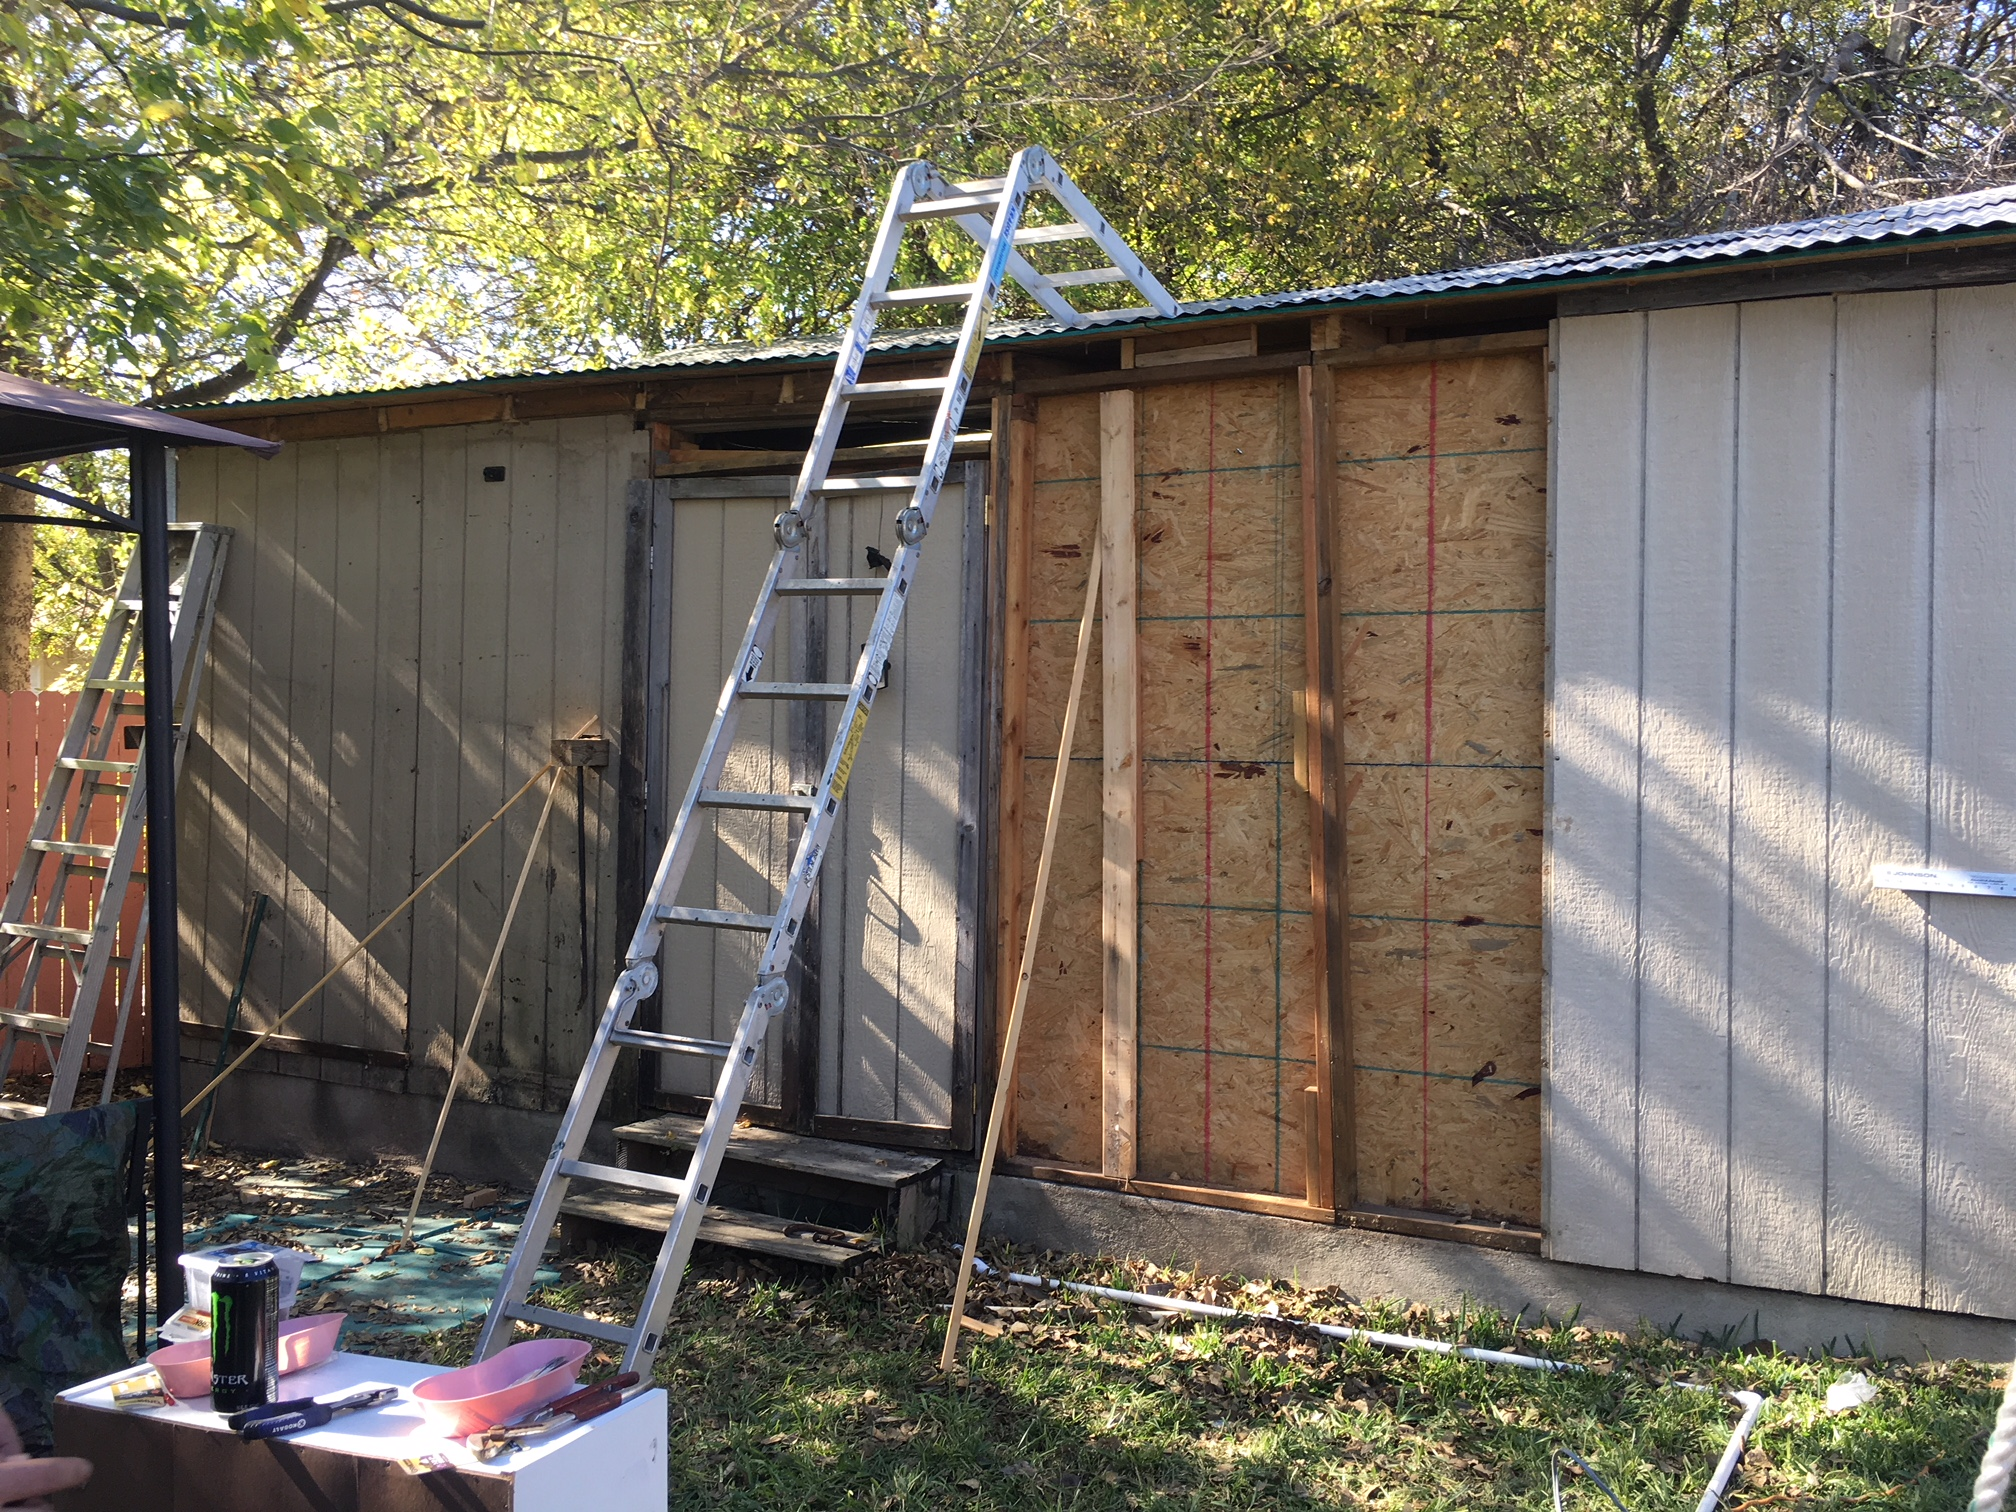 Roof on the shed that needed work, which the firefighters fixed. (KXAN Photo/Todd Bynum)